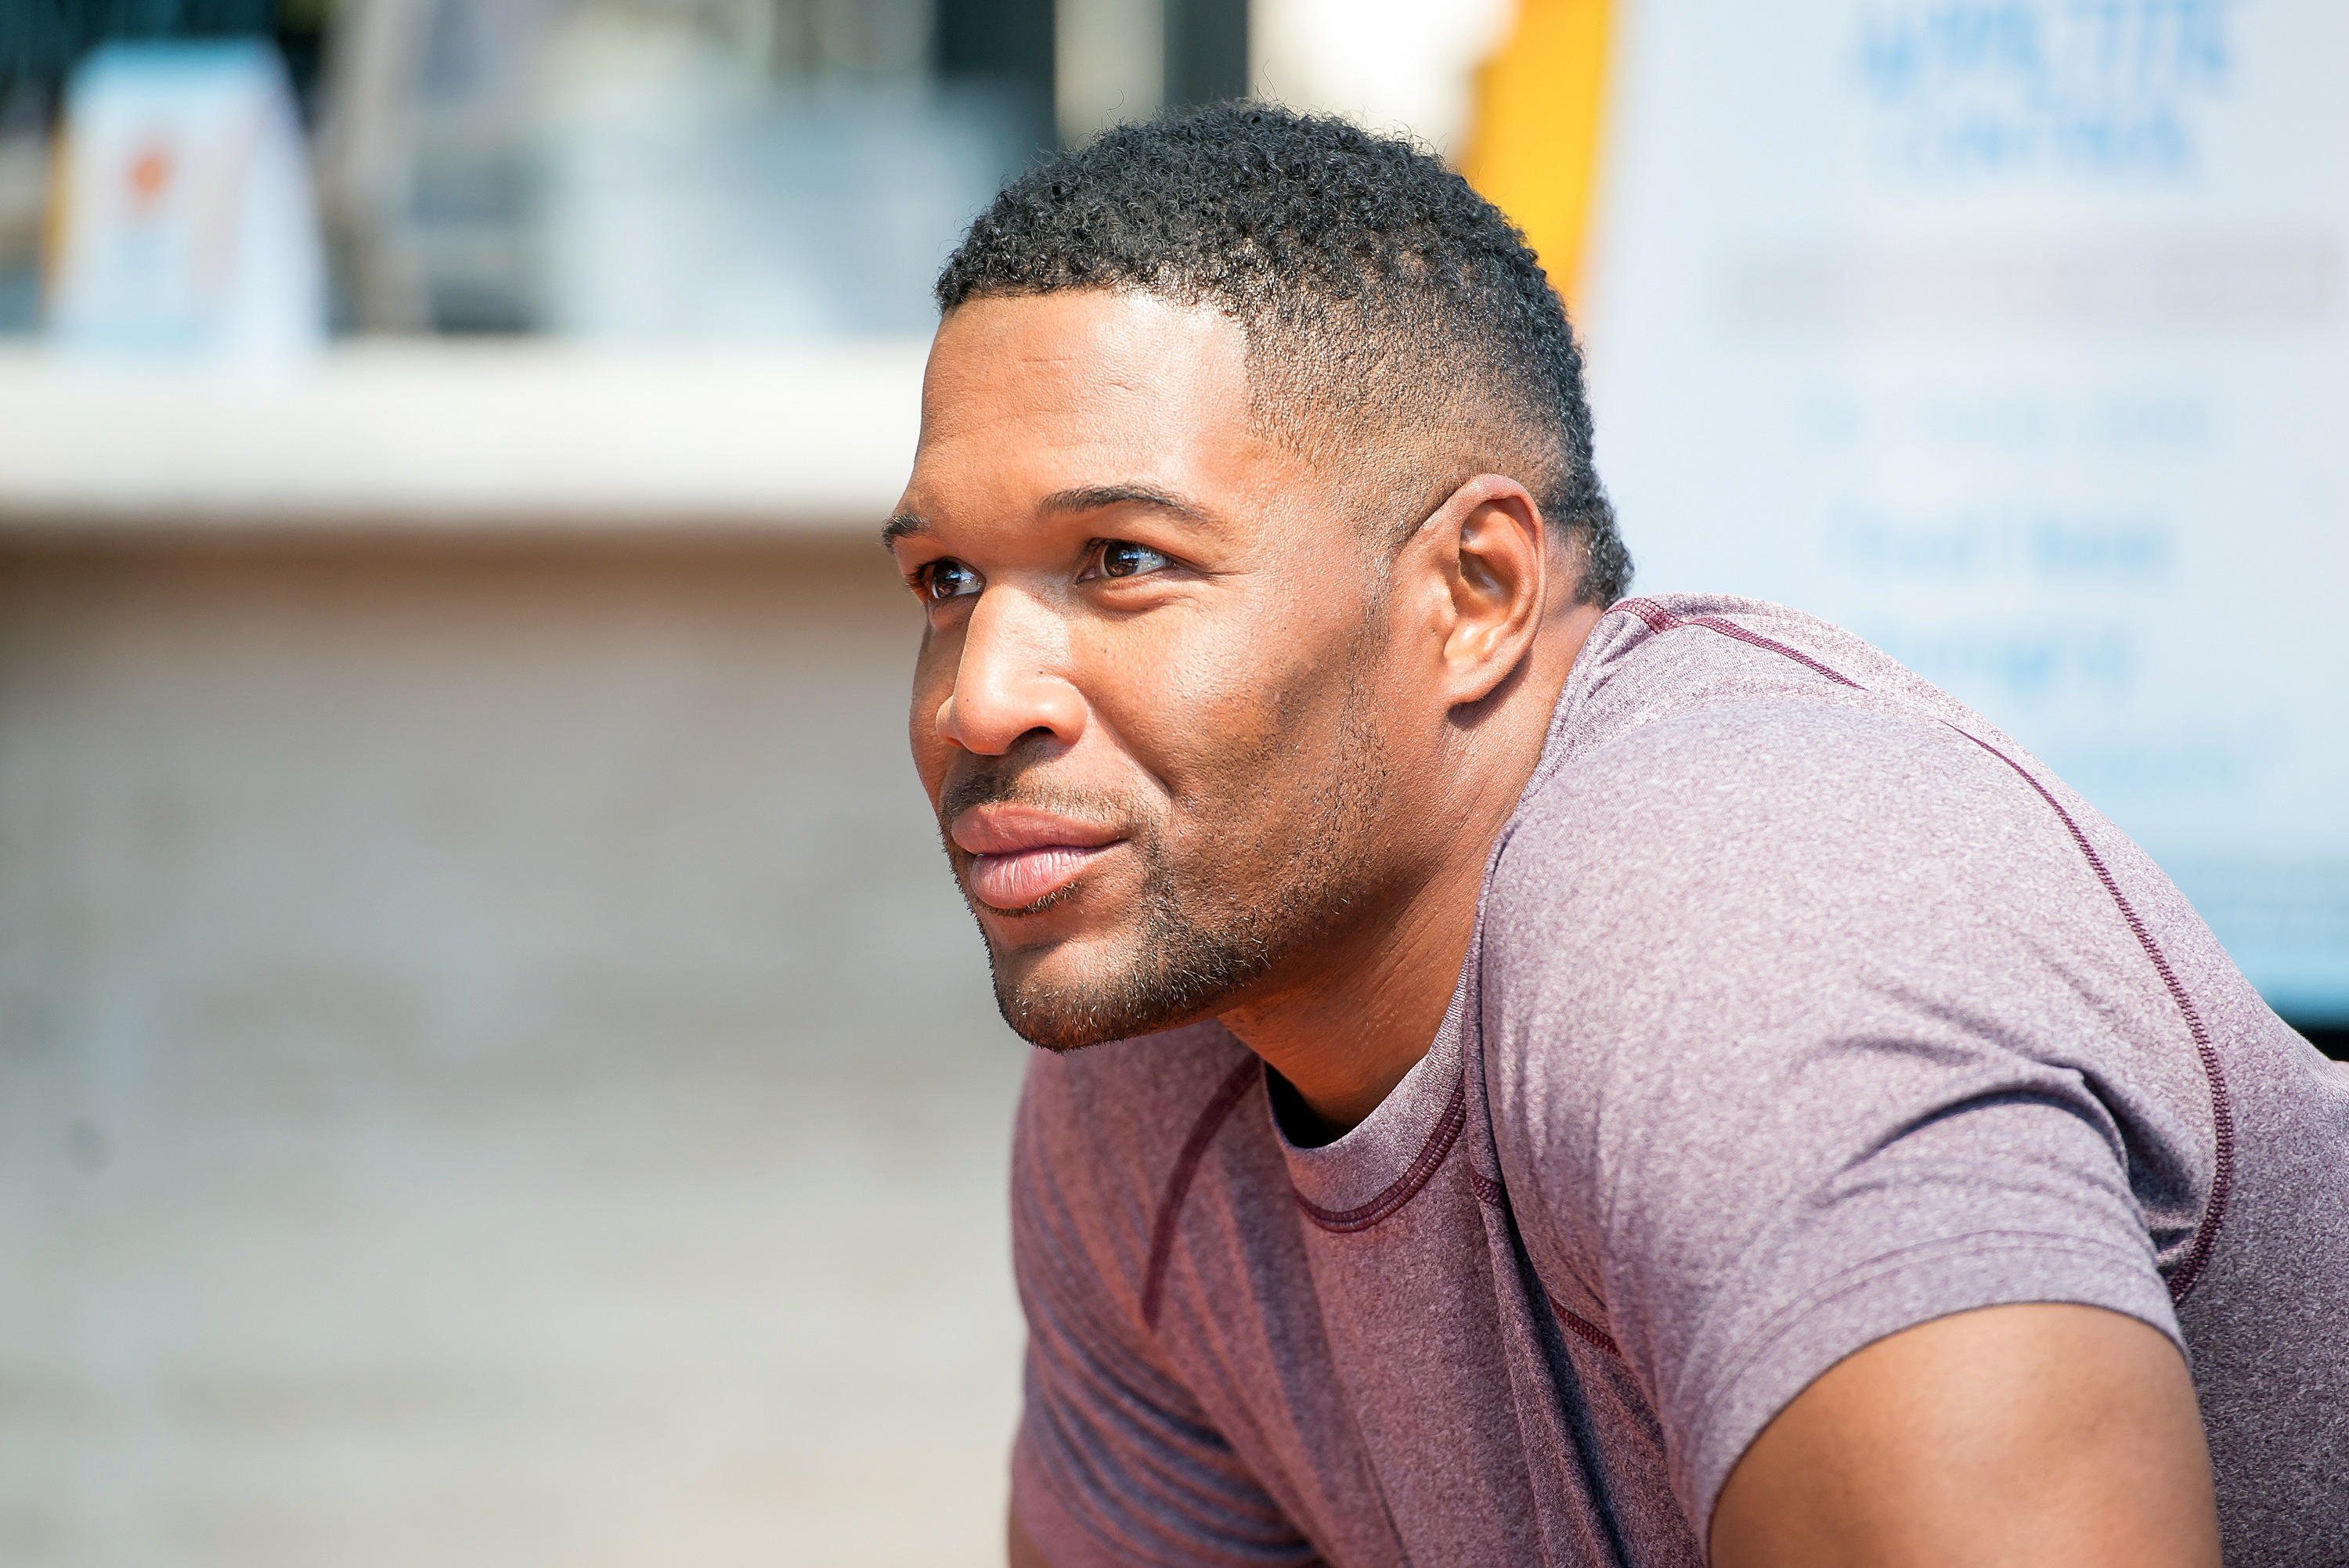 Former Giants player Michael Strahan